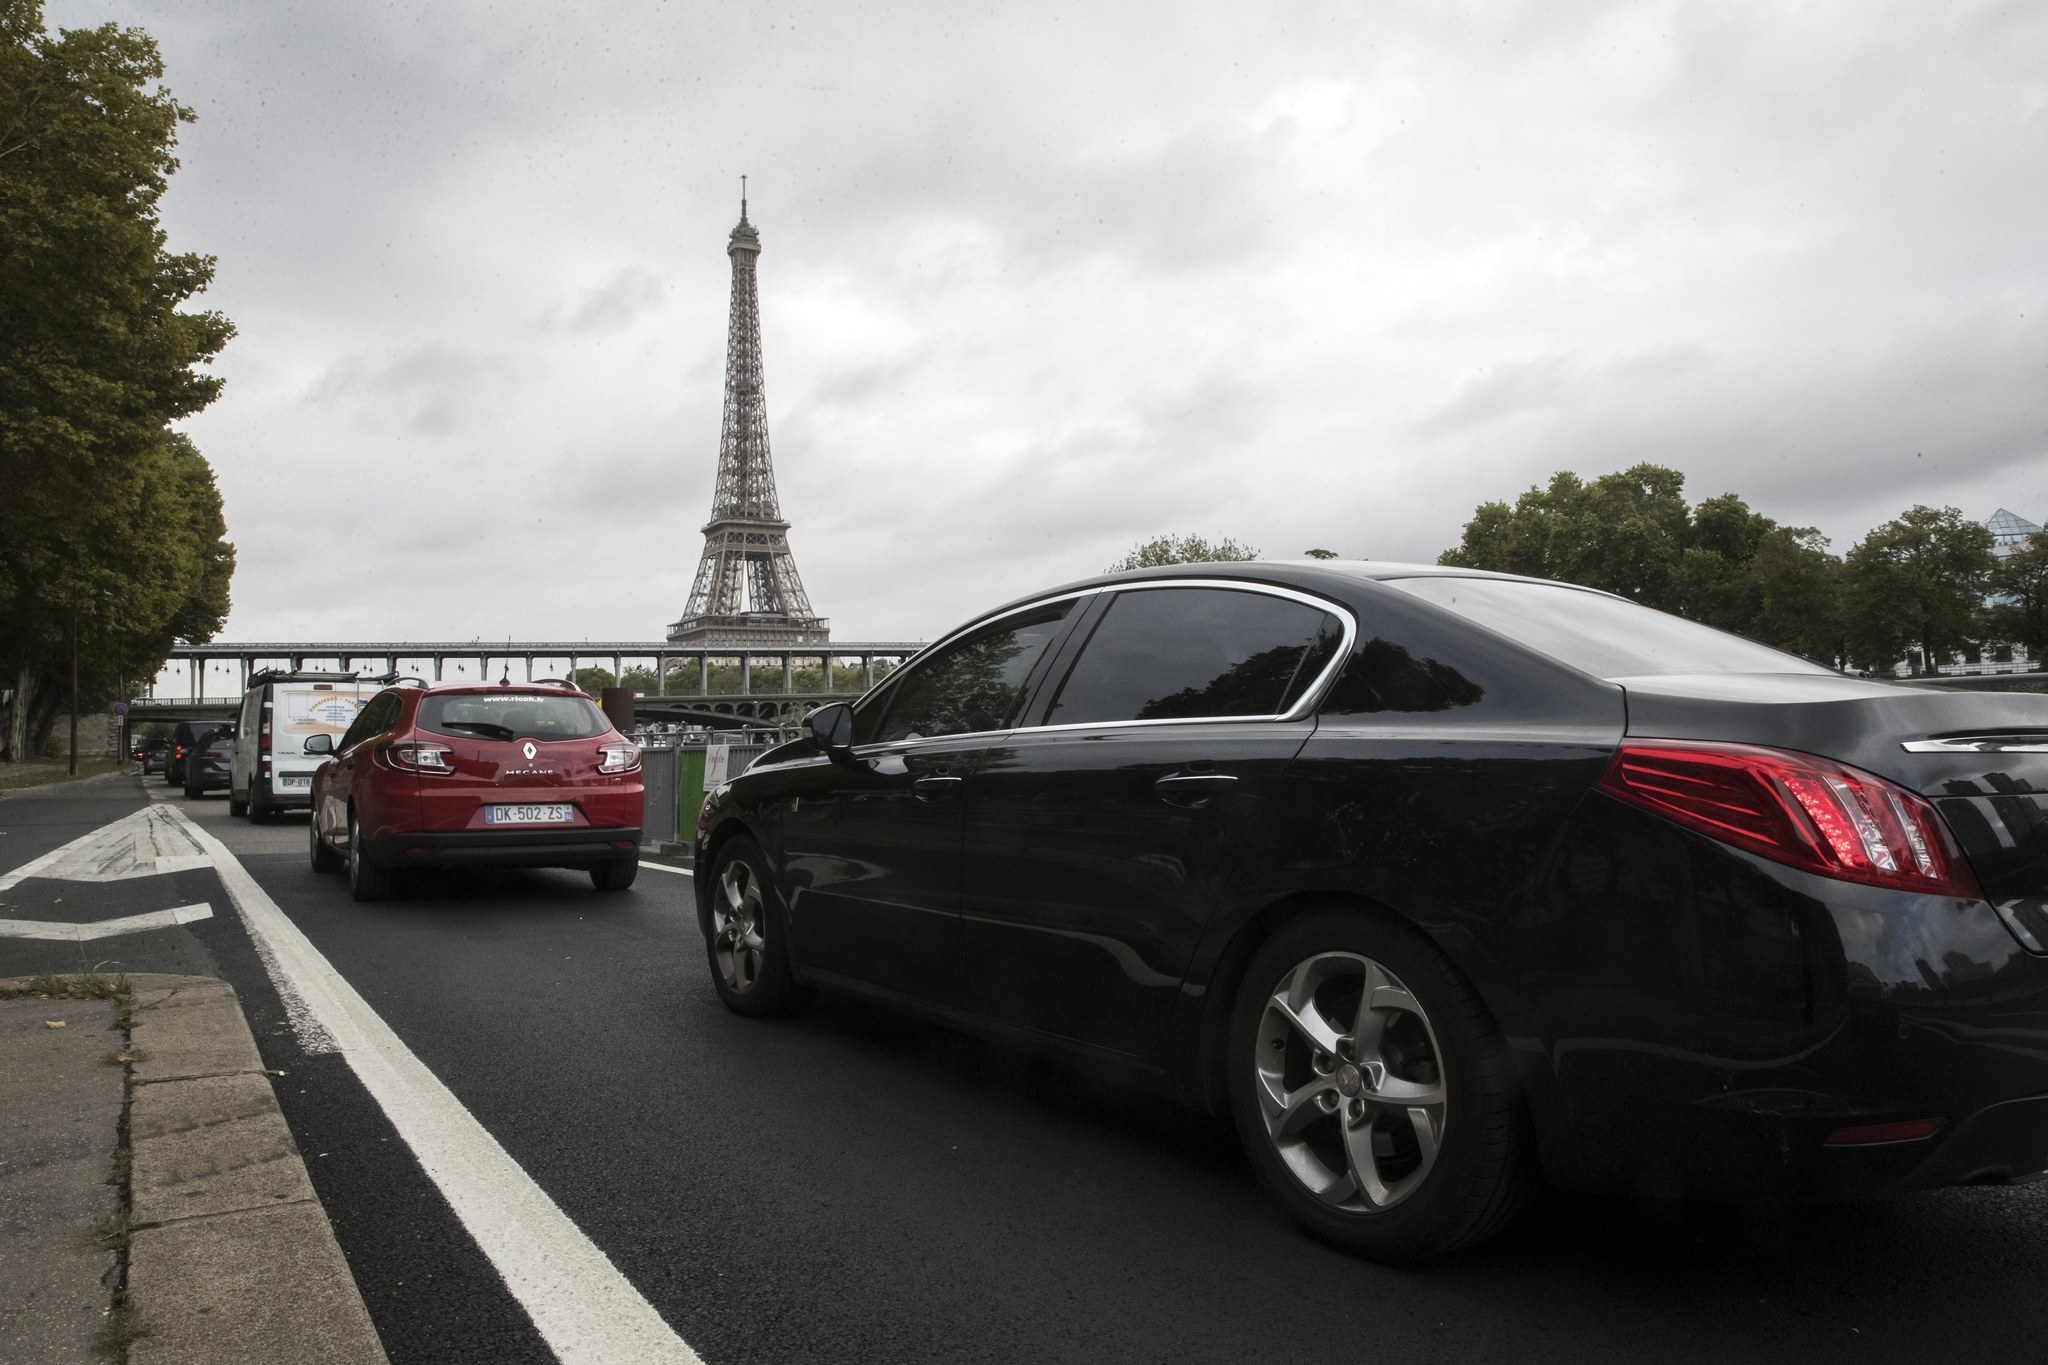 Paris plans to ban gas-powered cars in city by 2030 - Chicago Tribune